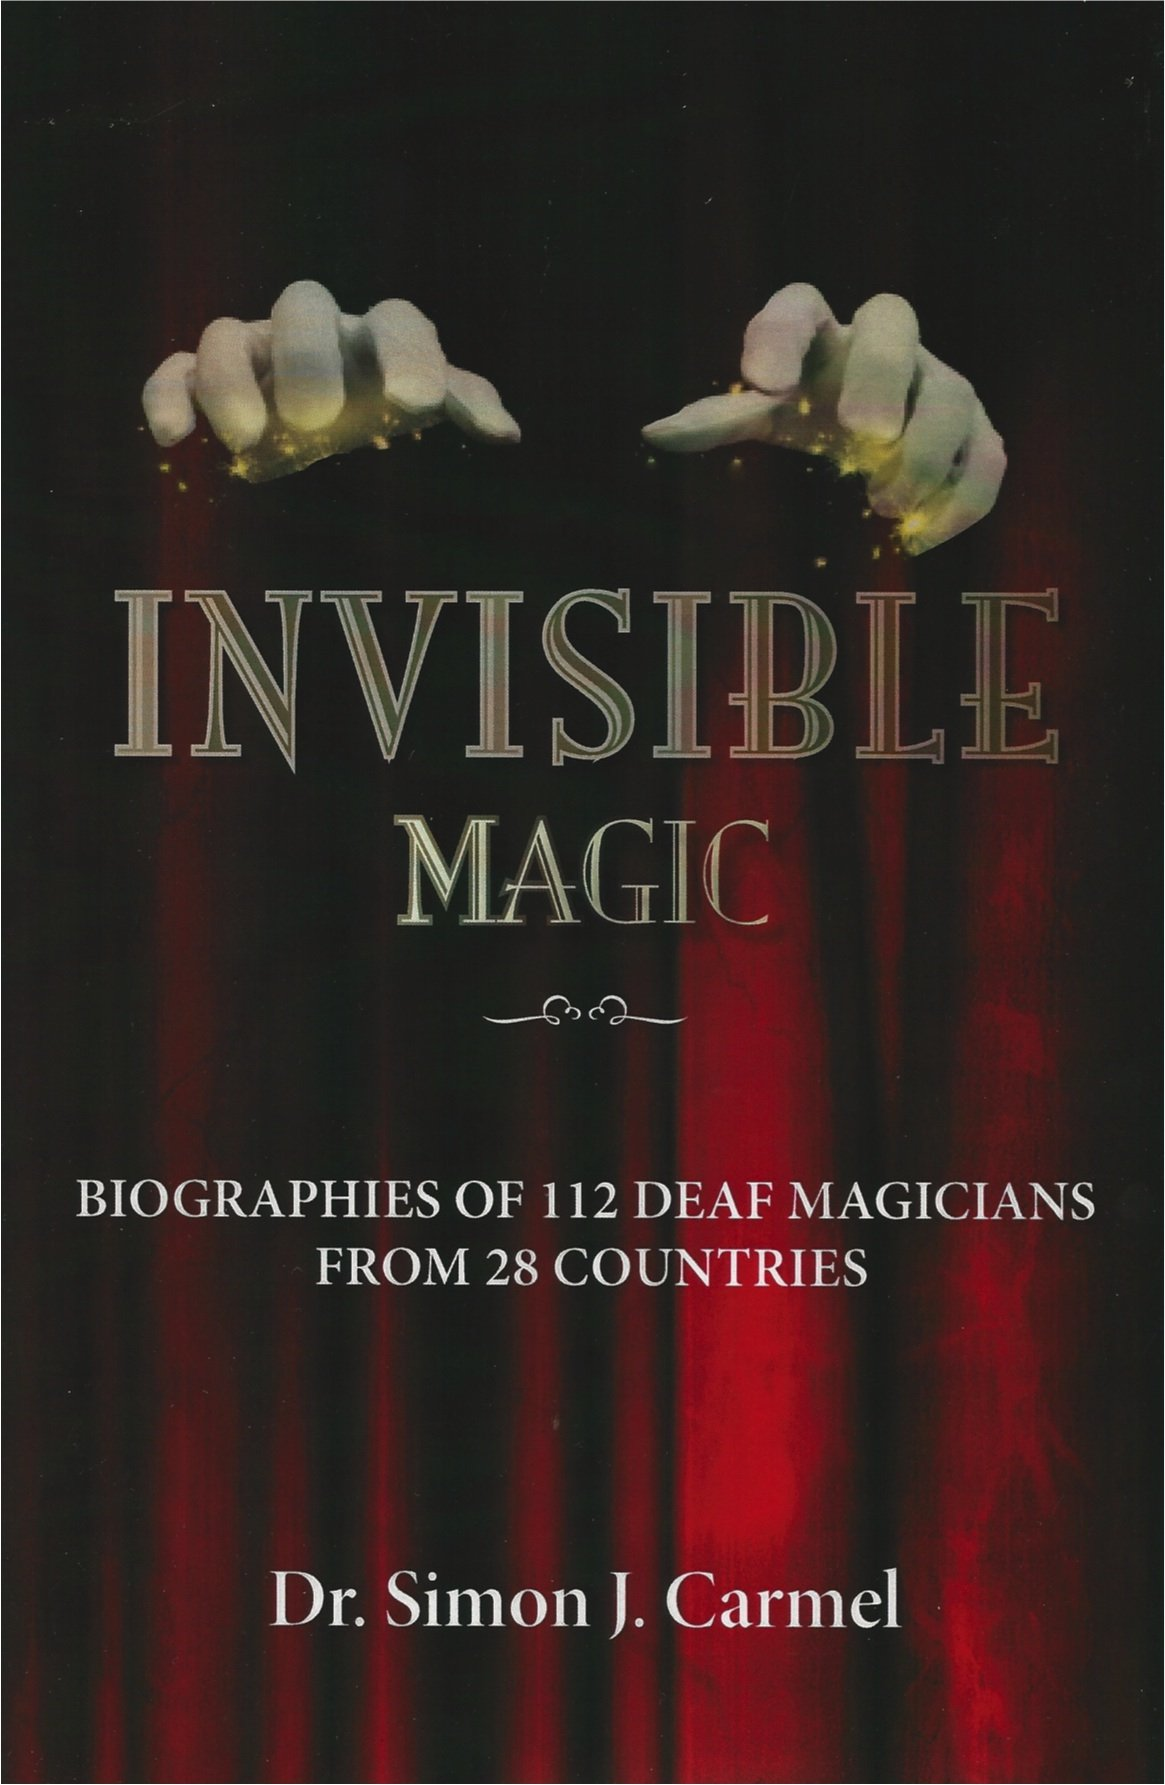 Invisible Magic: Biographies of 112 Deaf Magicians from 28 Countries. Books on Deaf Magicians, Books on Deaf Individuals